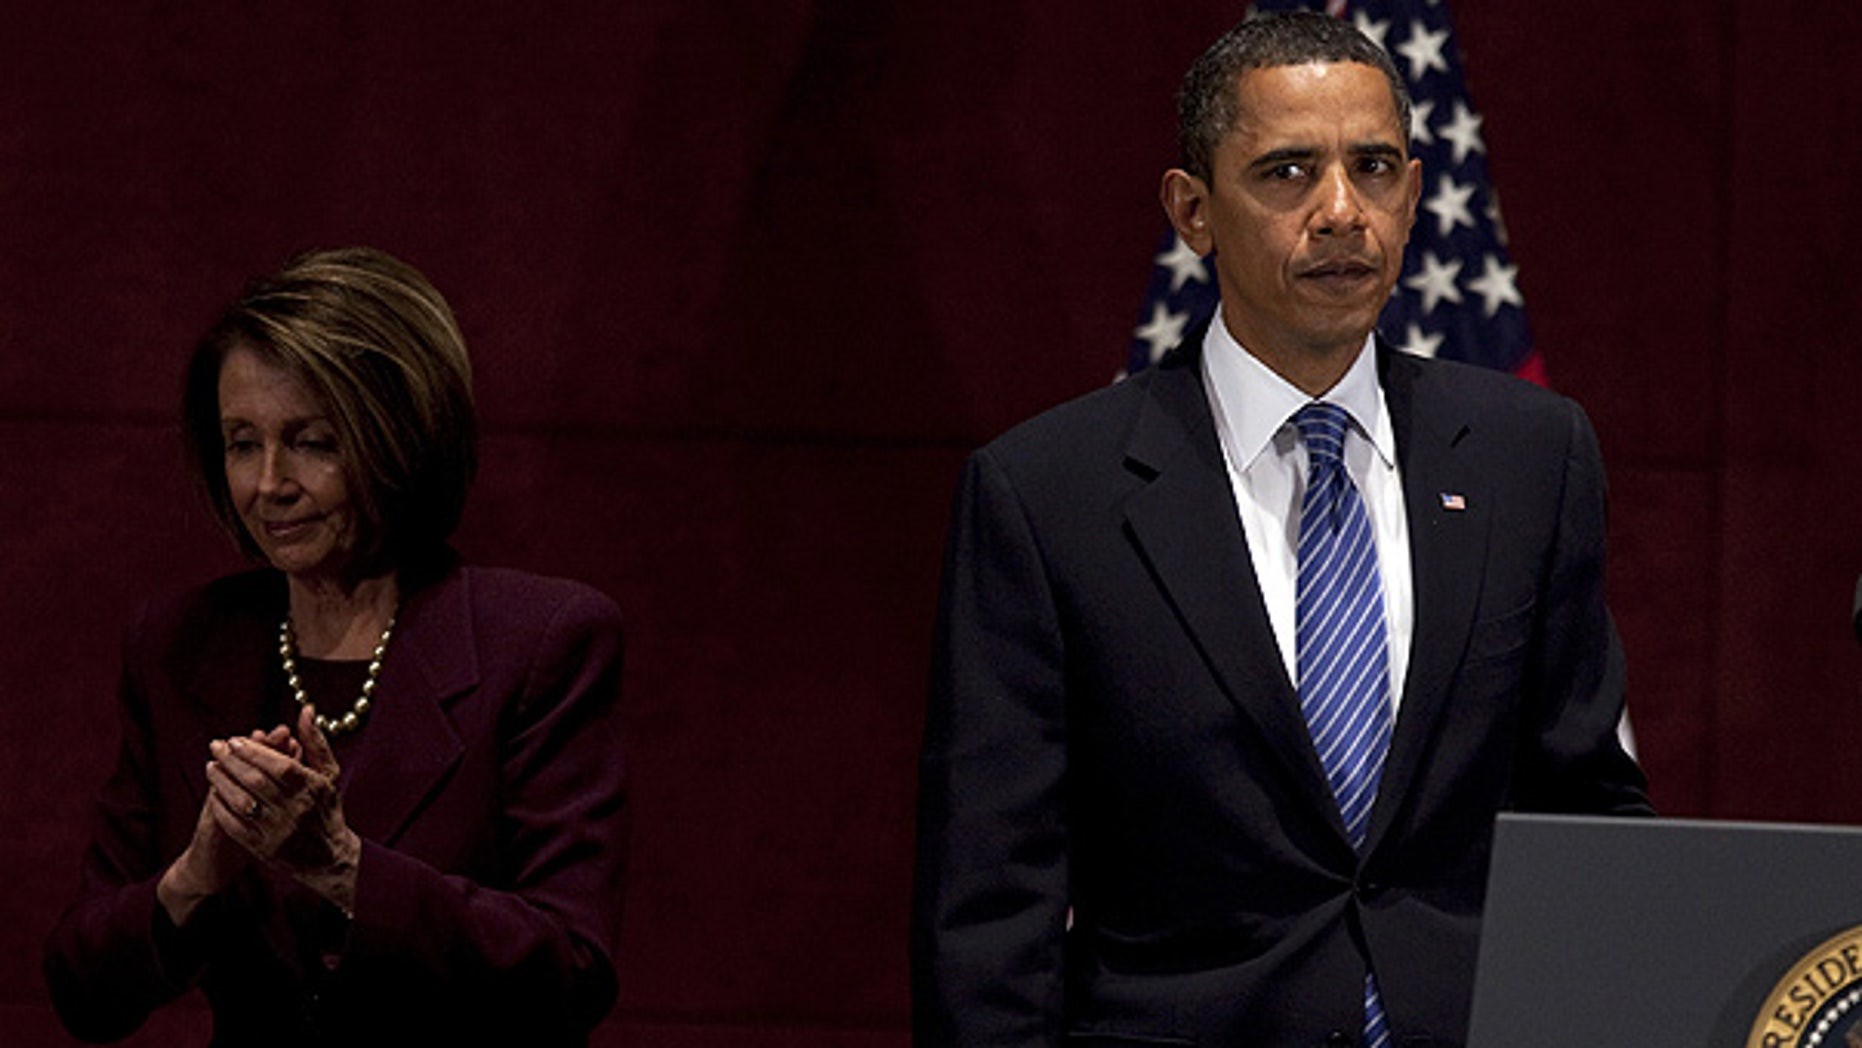 Jan. 15: President Obama with Speaker of the House Nancy Pelosi at the U.S. Capitol. (AP)